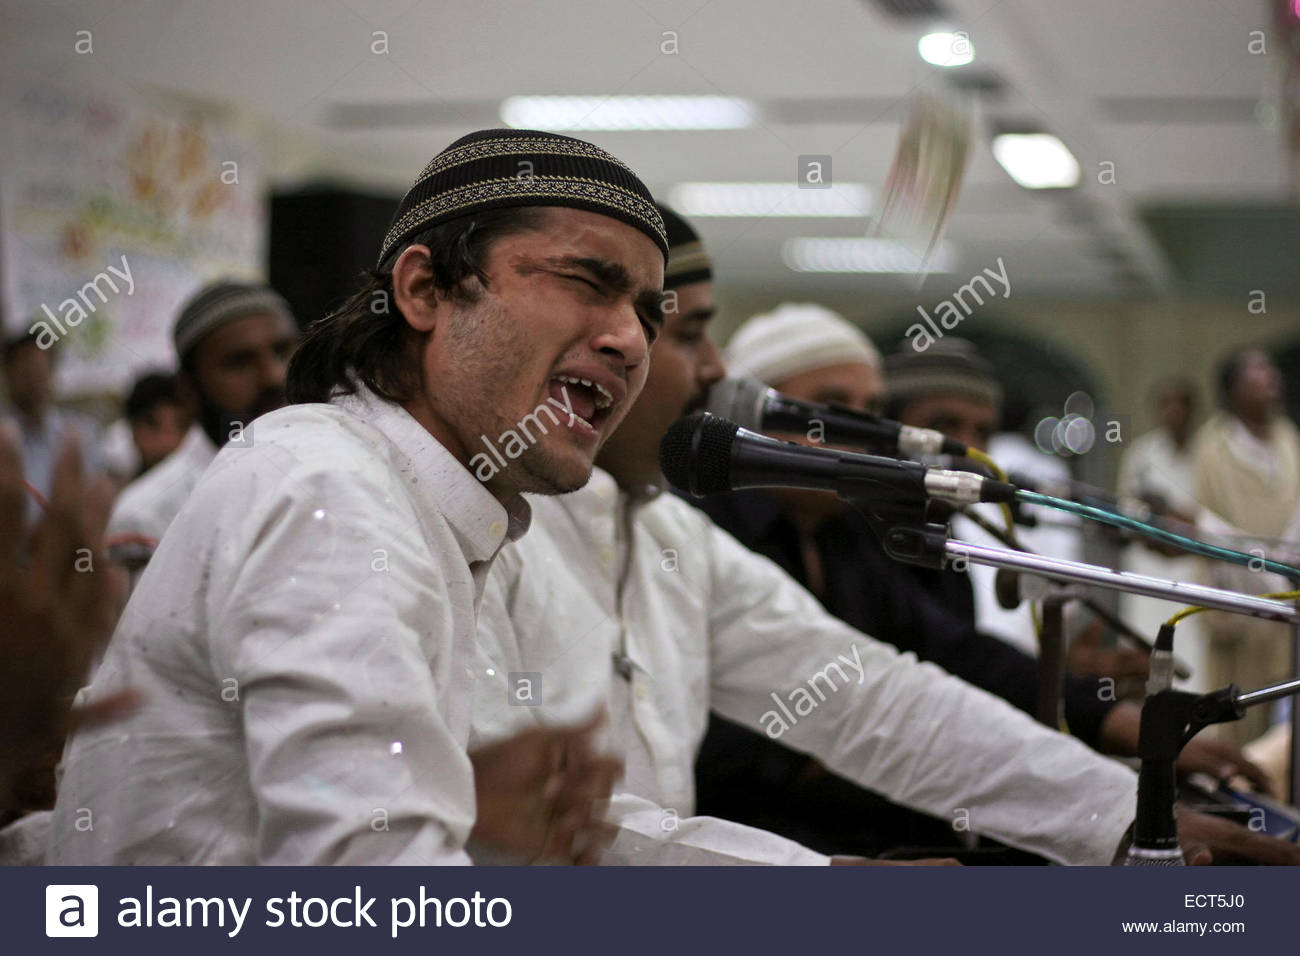 Qawwali concert in Data Durbar shrine of Persian Sufi Abul Hassan Ali Ibn Usman al-Jullabi al-Hajvery al-Ghaznawi - Stock Image